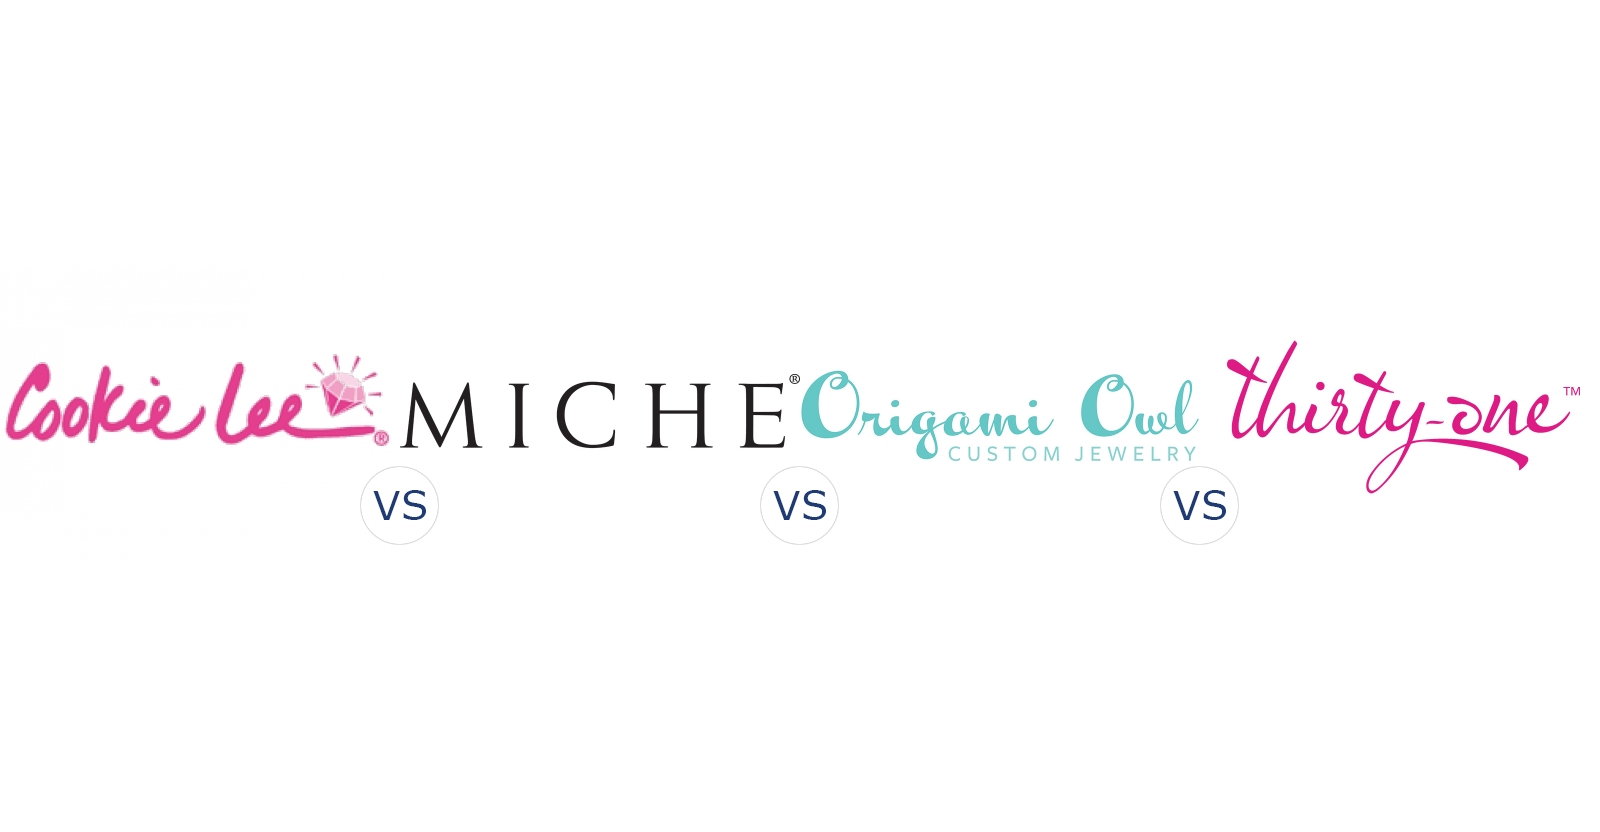 Cookie Lee vs. Miche Bags vs. Origami Owl vs. Thirty One Gifts